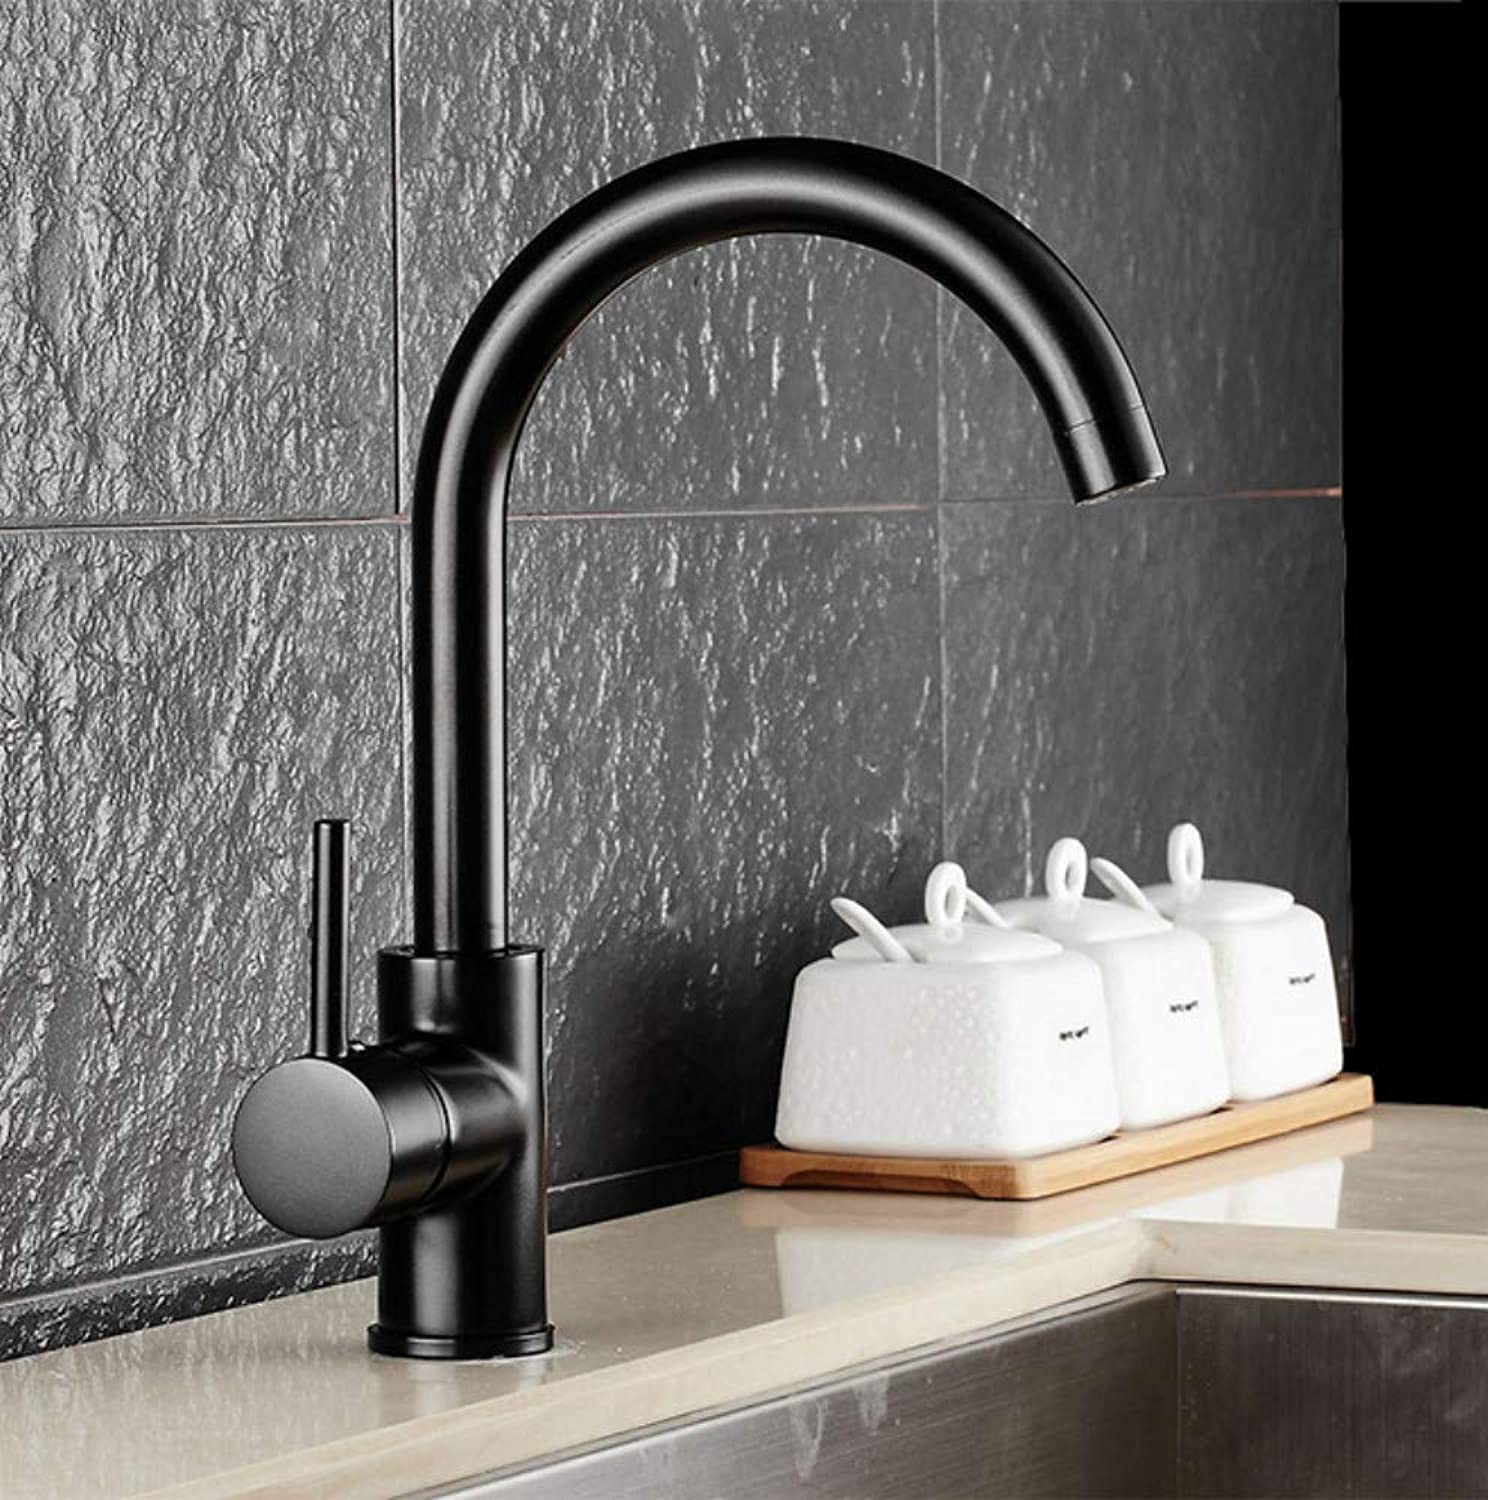 Xiujie Faucet Copper Black Kitchen redatable Faucet Single Handle Single Hole Hot and Cold Sink Elbow Faucet